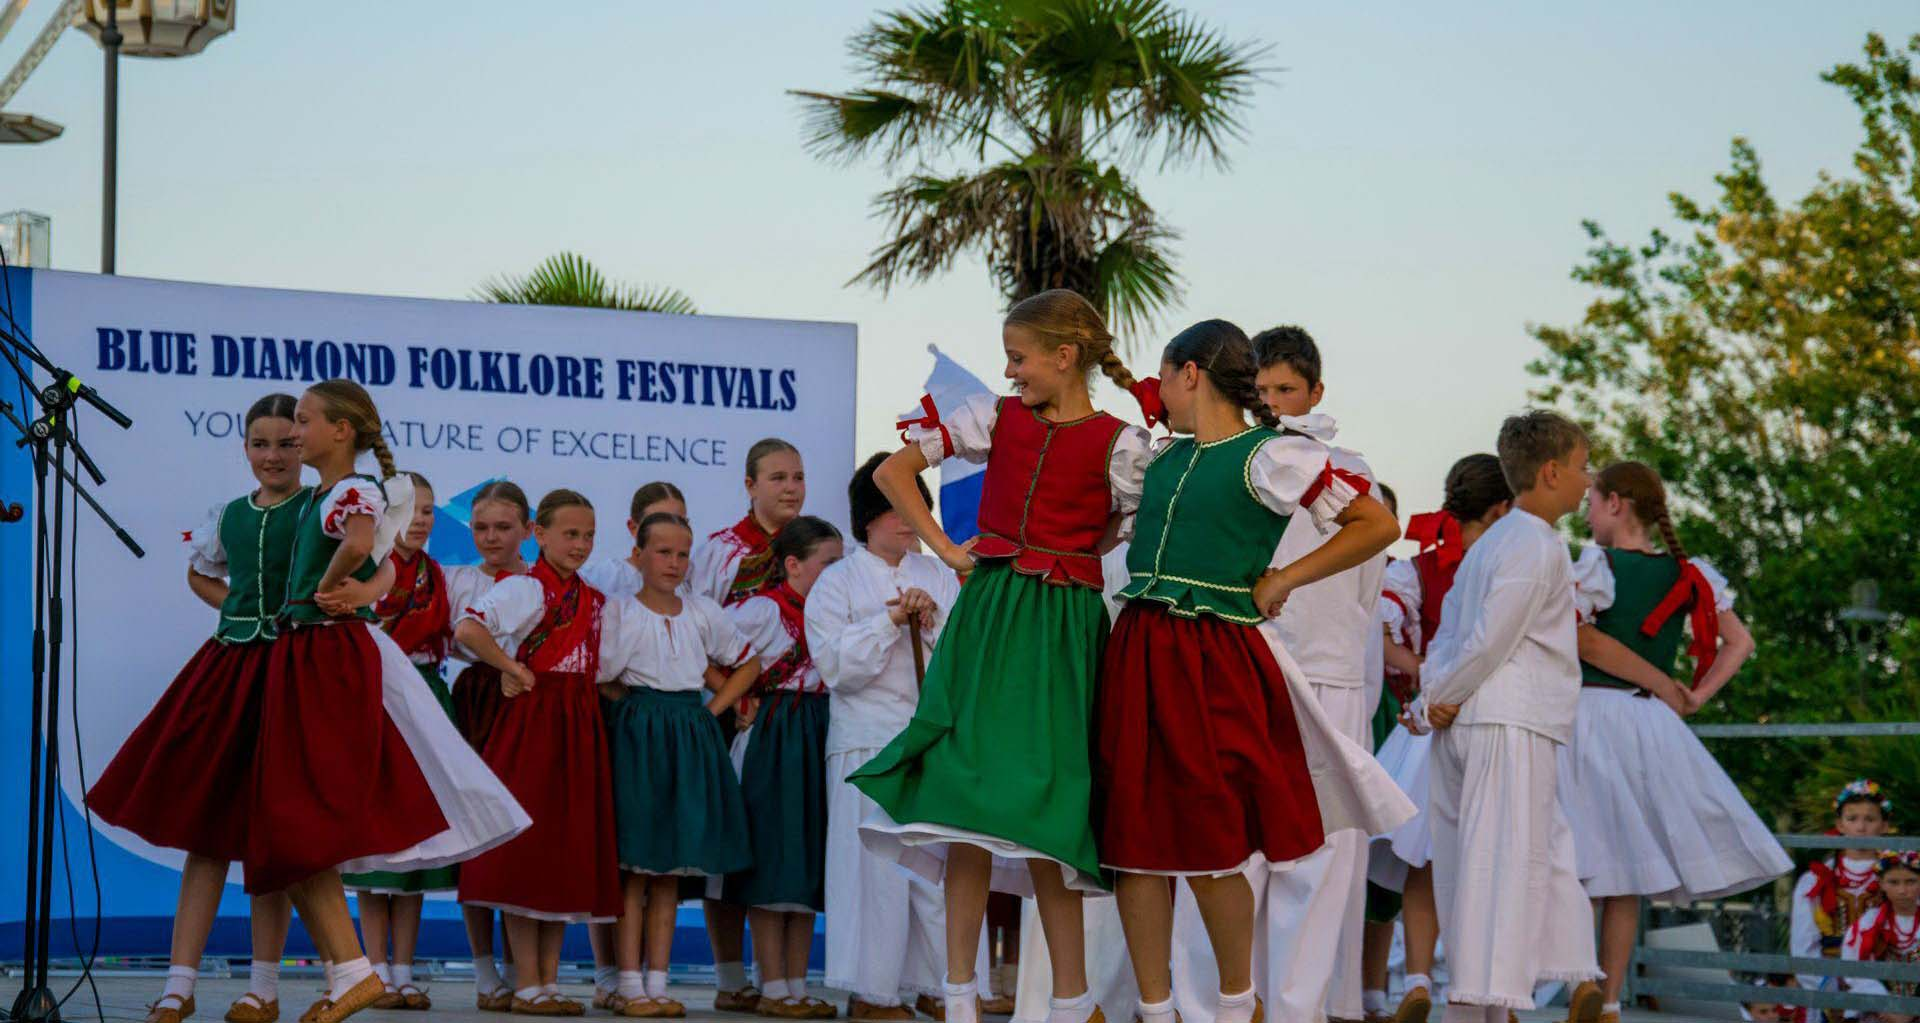 """ALEGRIA DE DANZAR"" COSTA BRAVA, BARCELONA 24-29 August, 2020  – VIII INTERNATIONAL FOLKLORE FESTIVAL"